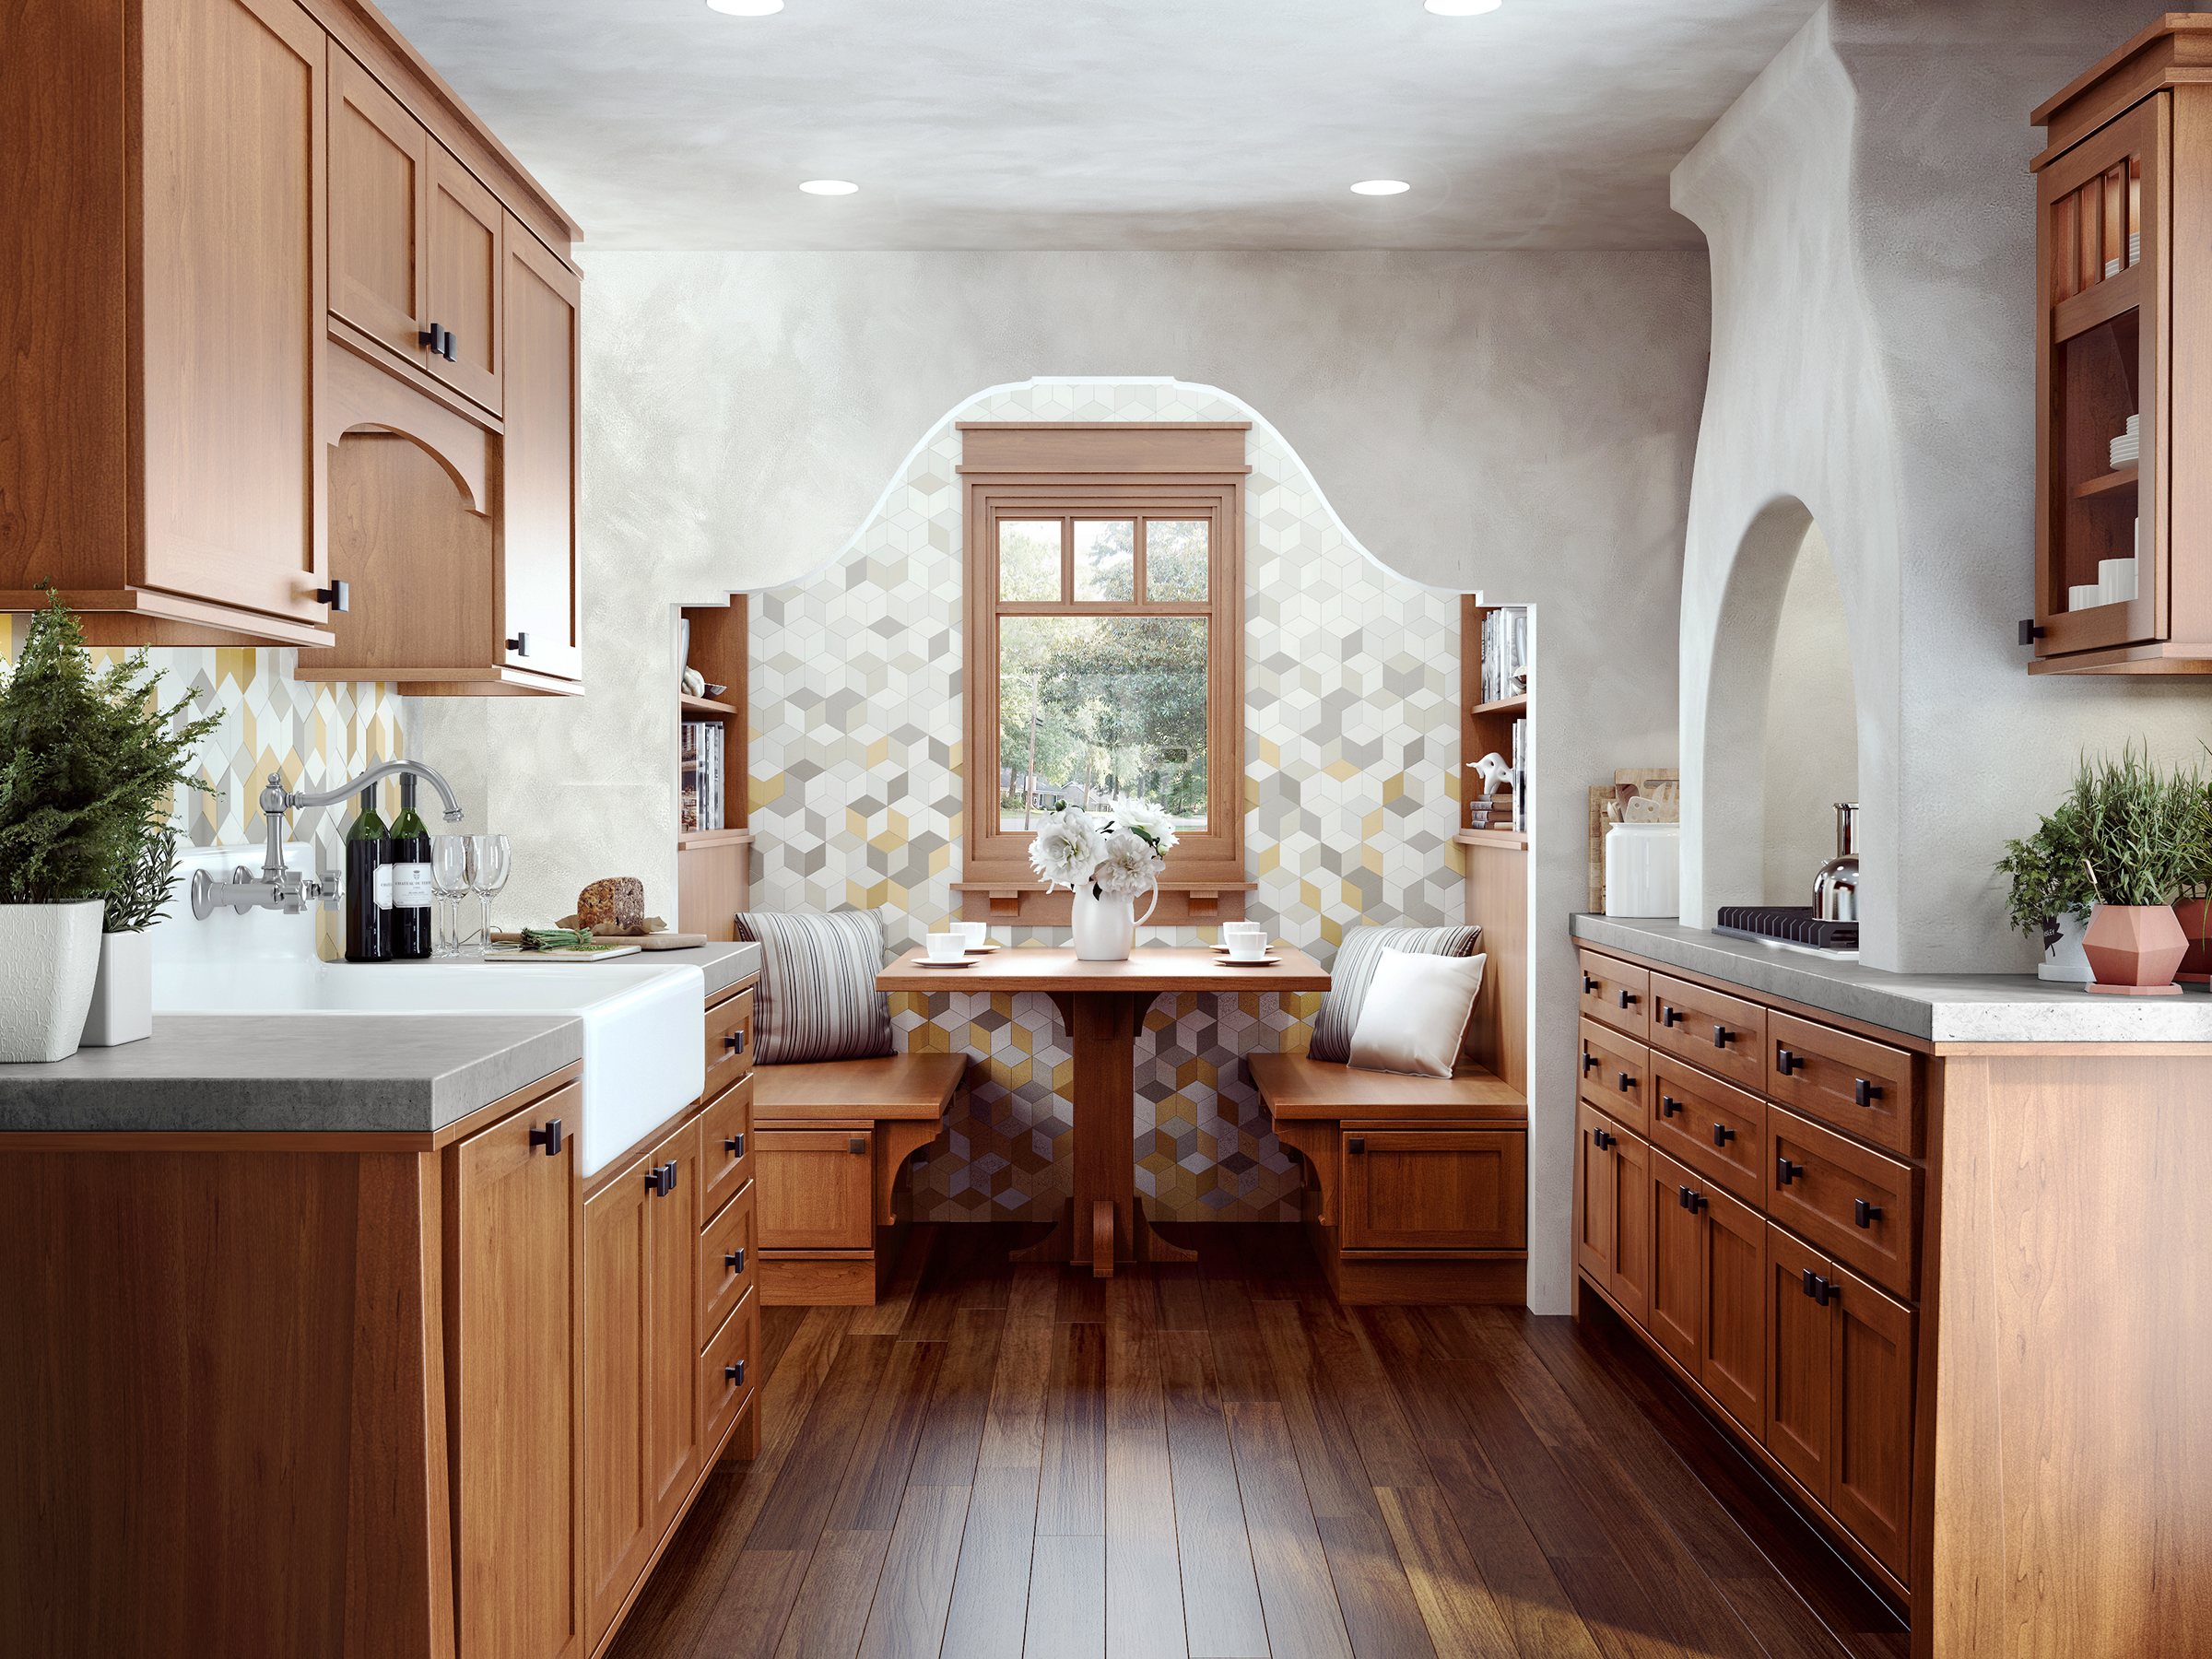 Delicieux Canyon Creek Cabinets